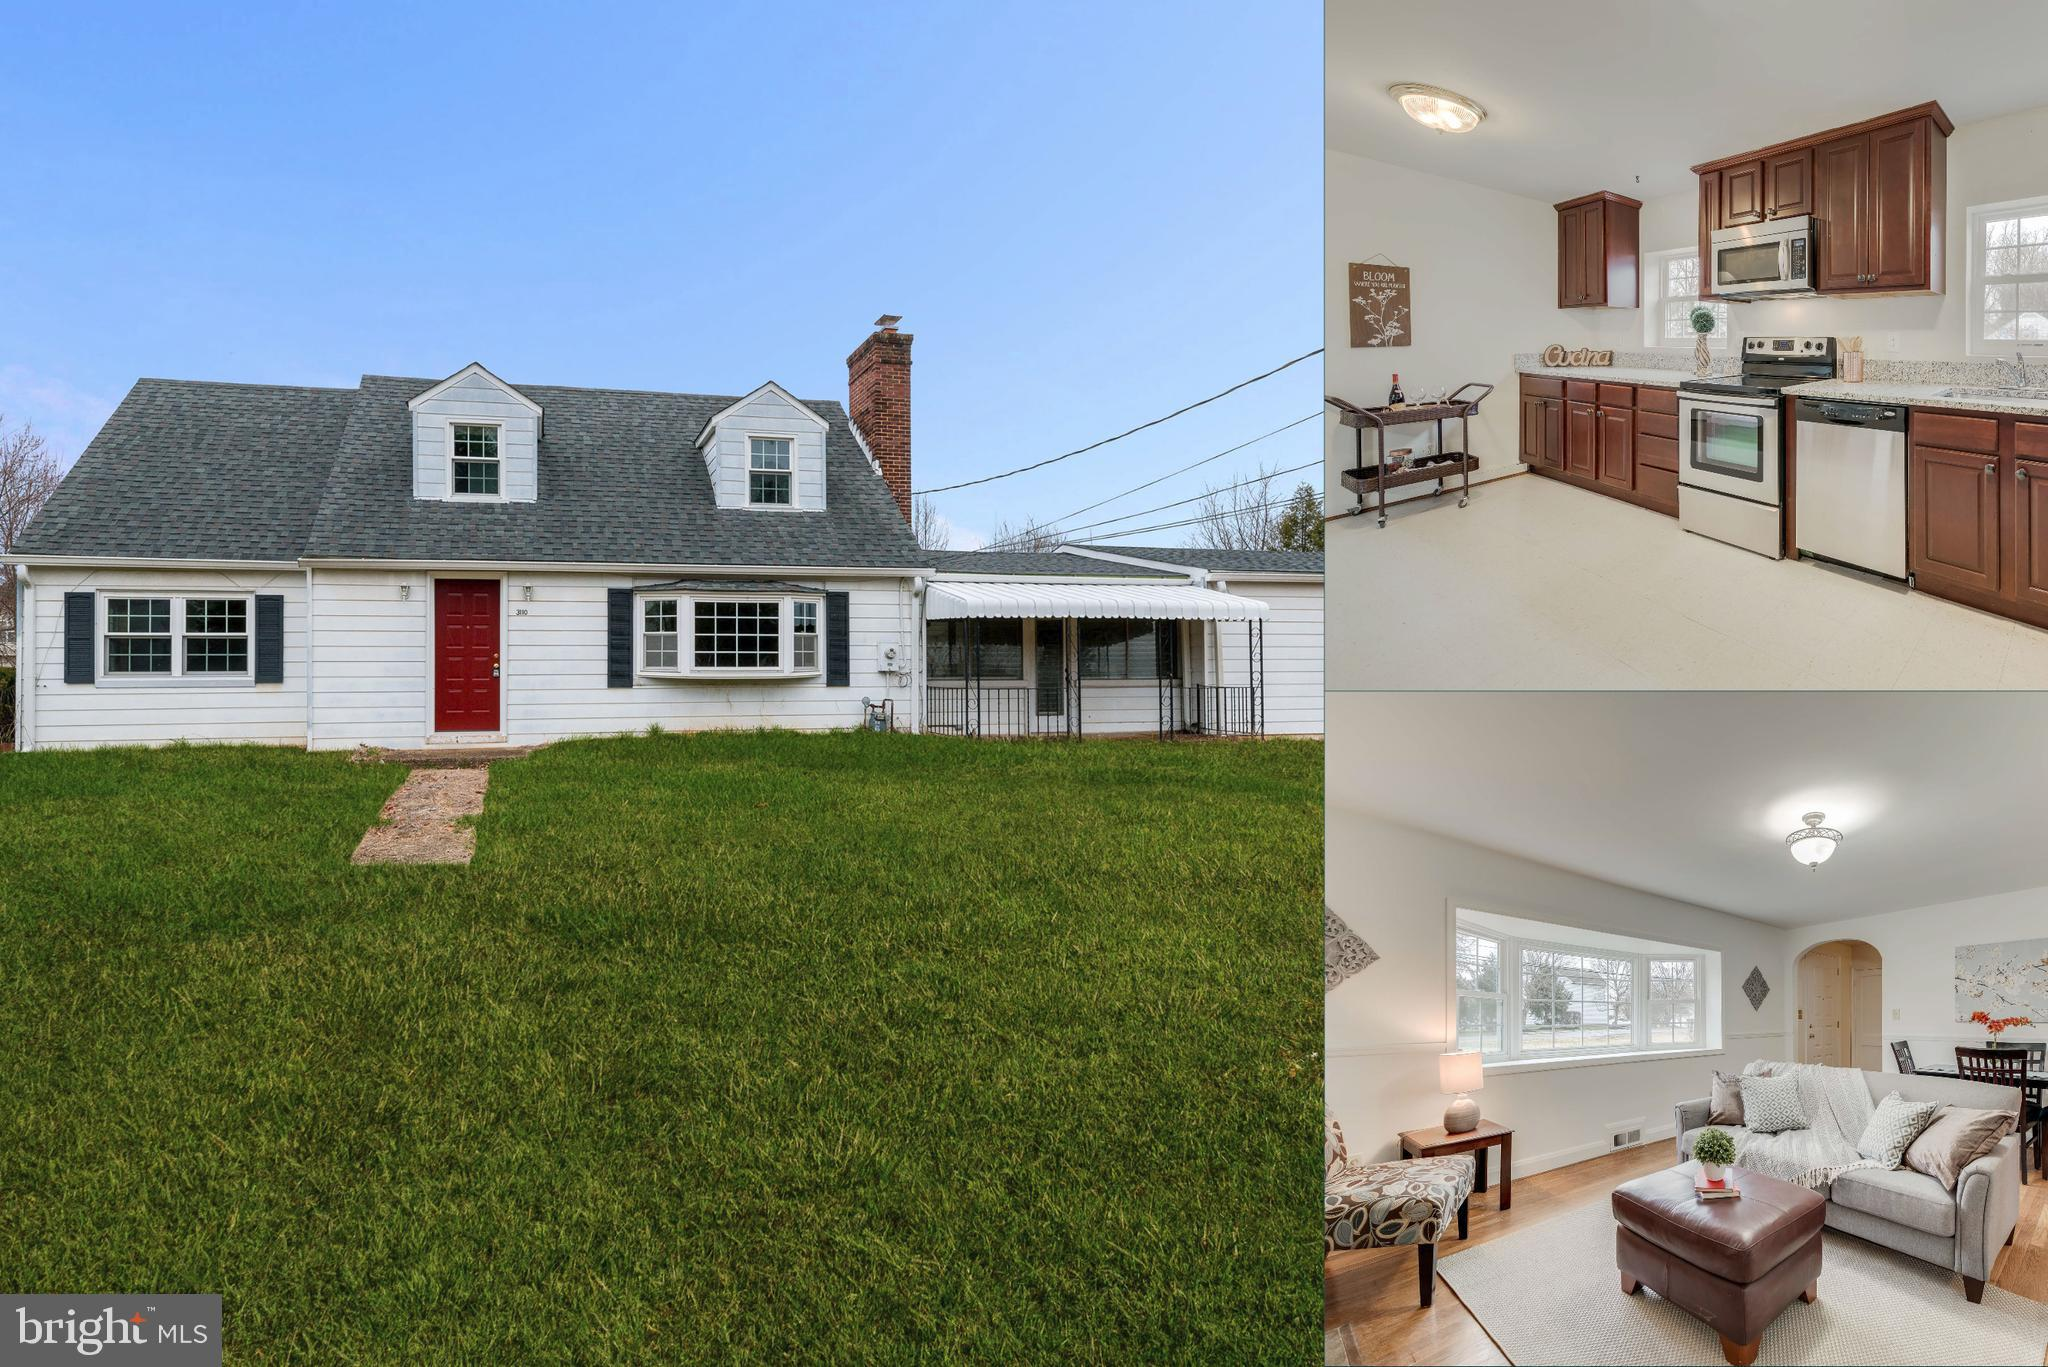 Terrific 4 bedroom, 2 bath Cape Cod posted on a 1 acre corner lot. Home features an upgraded kitchen